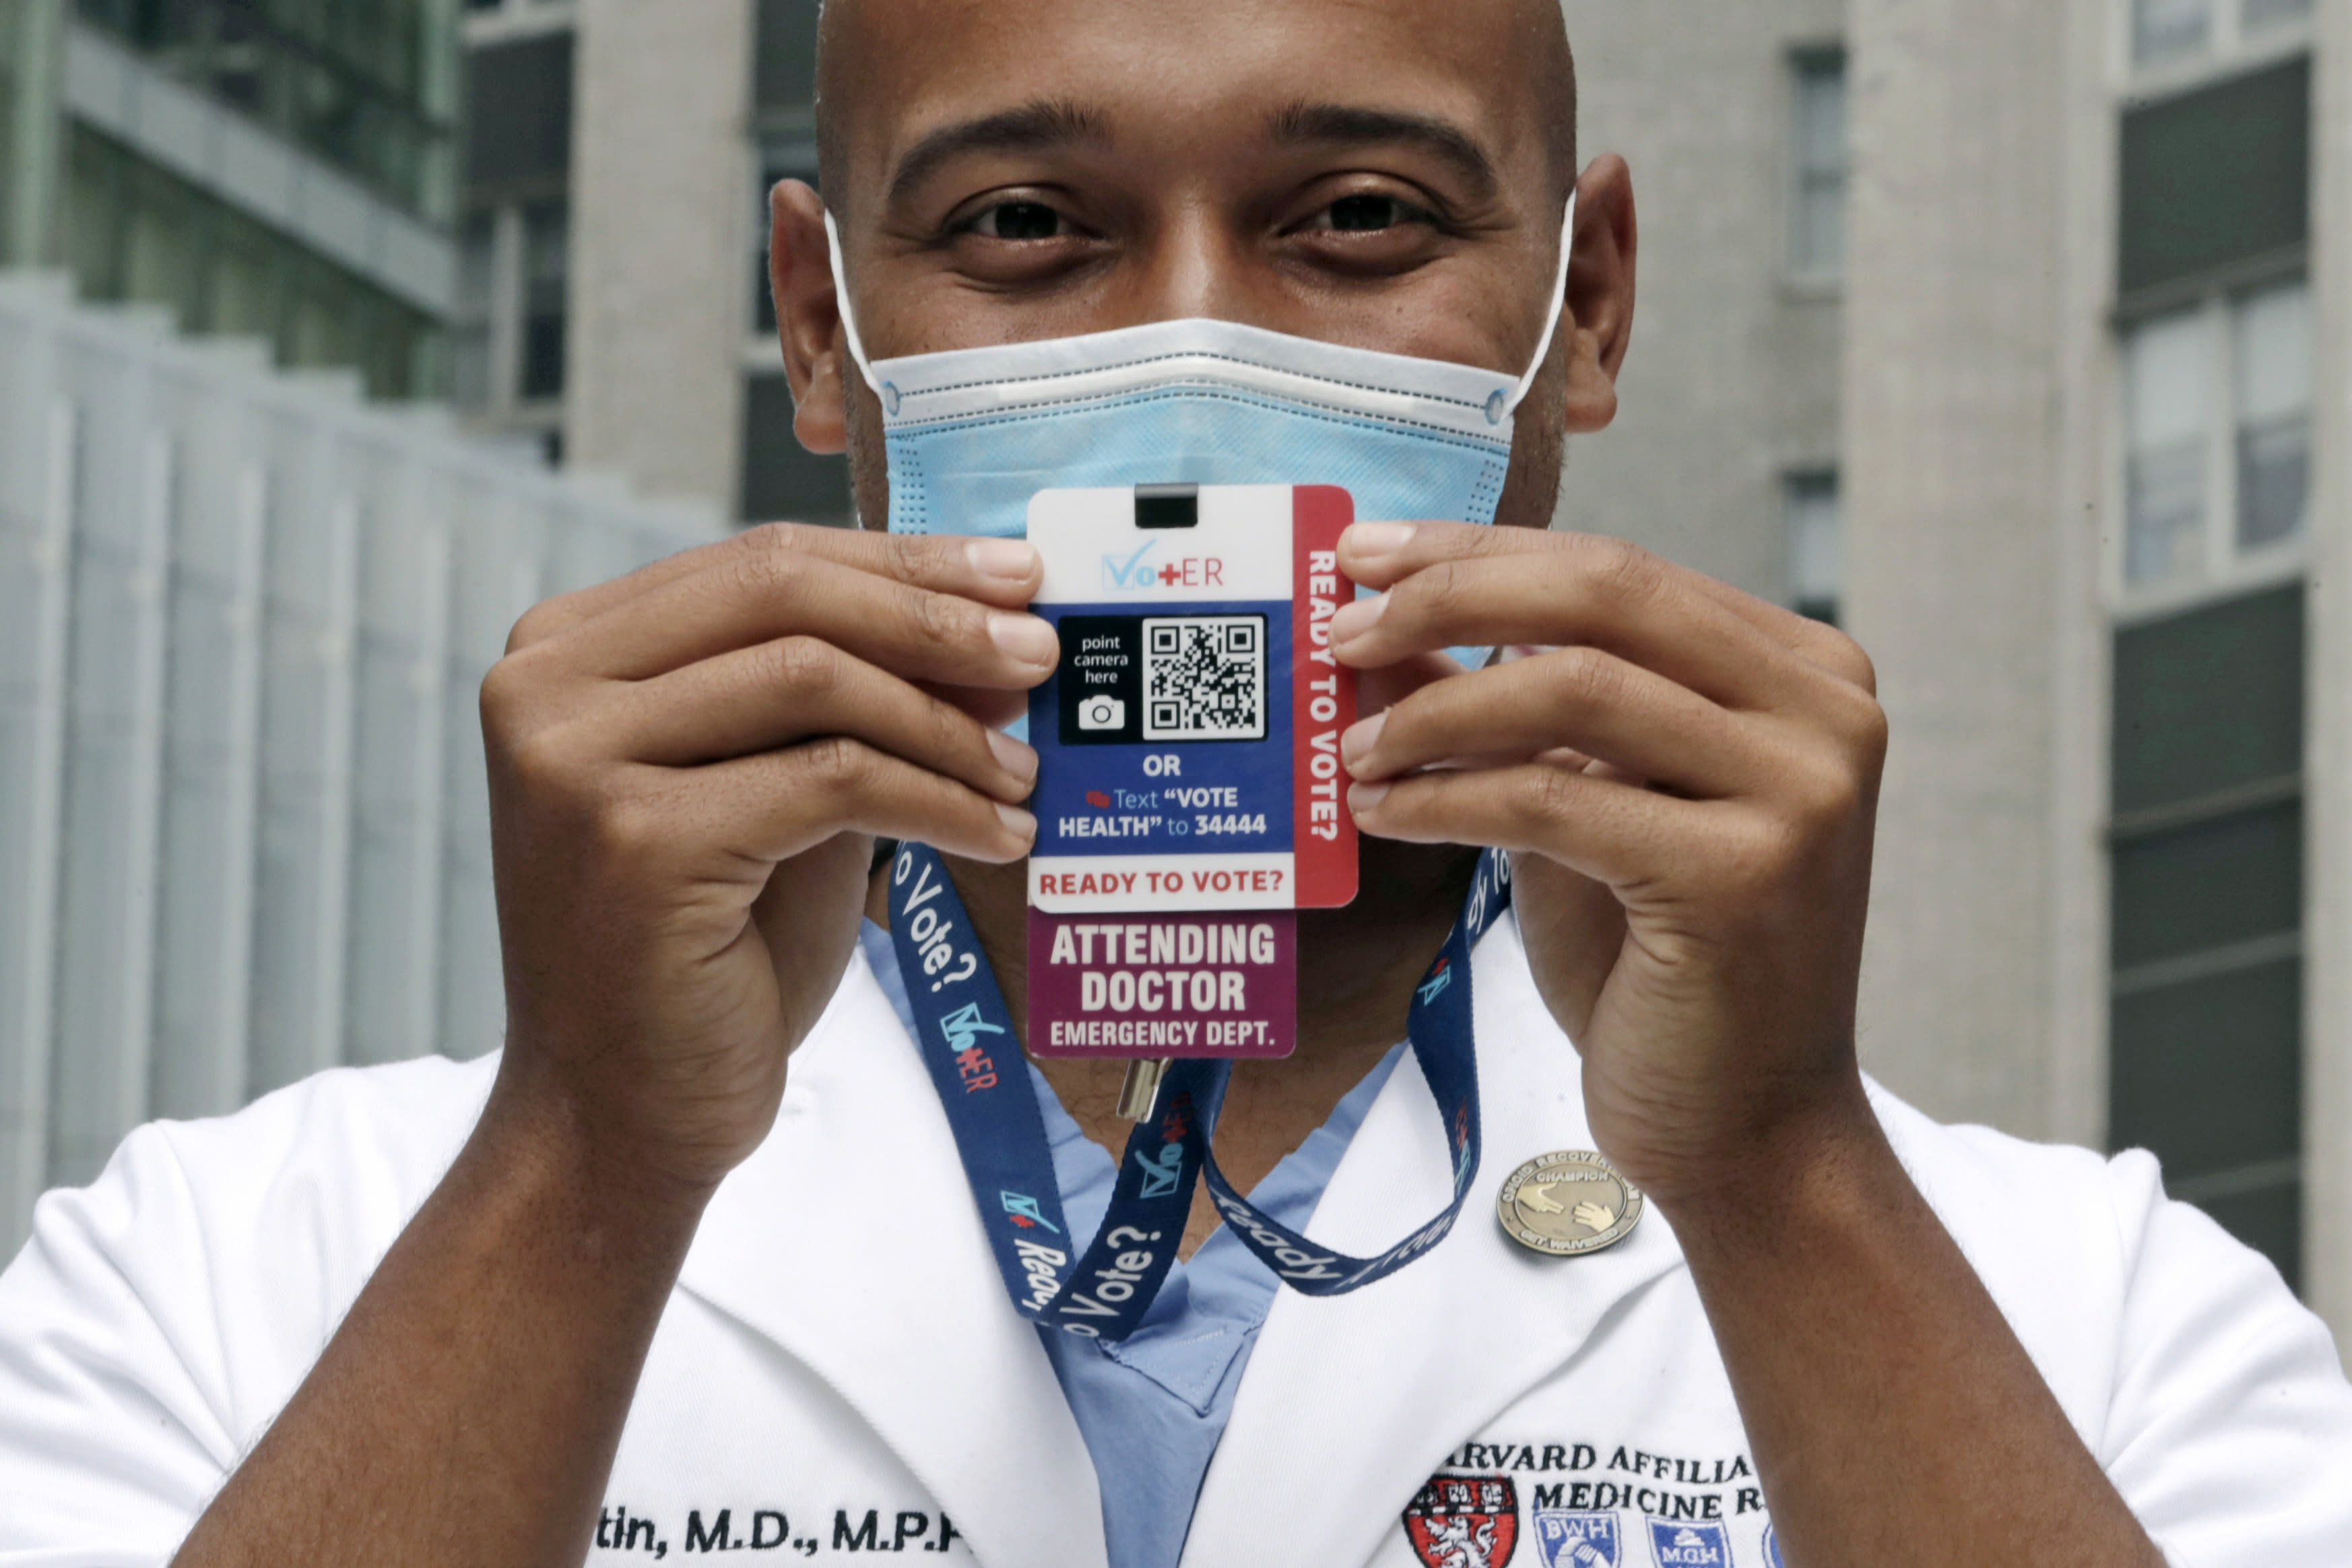 """Alister Martin, an emergency room doctor at Massachusetts General Hospital, holds up a voter information card he wears on his ID lanyard, which gives patients a Q-code and text link to help them register to vote, outside the hospital, Friday, Aug. 7, 2020, in Boston. Martin founded the organization """"VotER"""" to provide medical professionals voter registration resources for patients who are unregistered voters. (AP Photo/Charles Krupa)"""